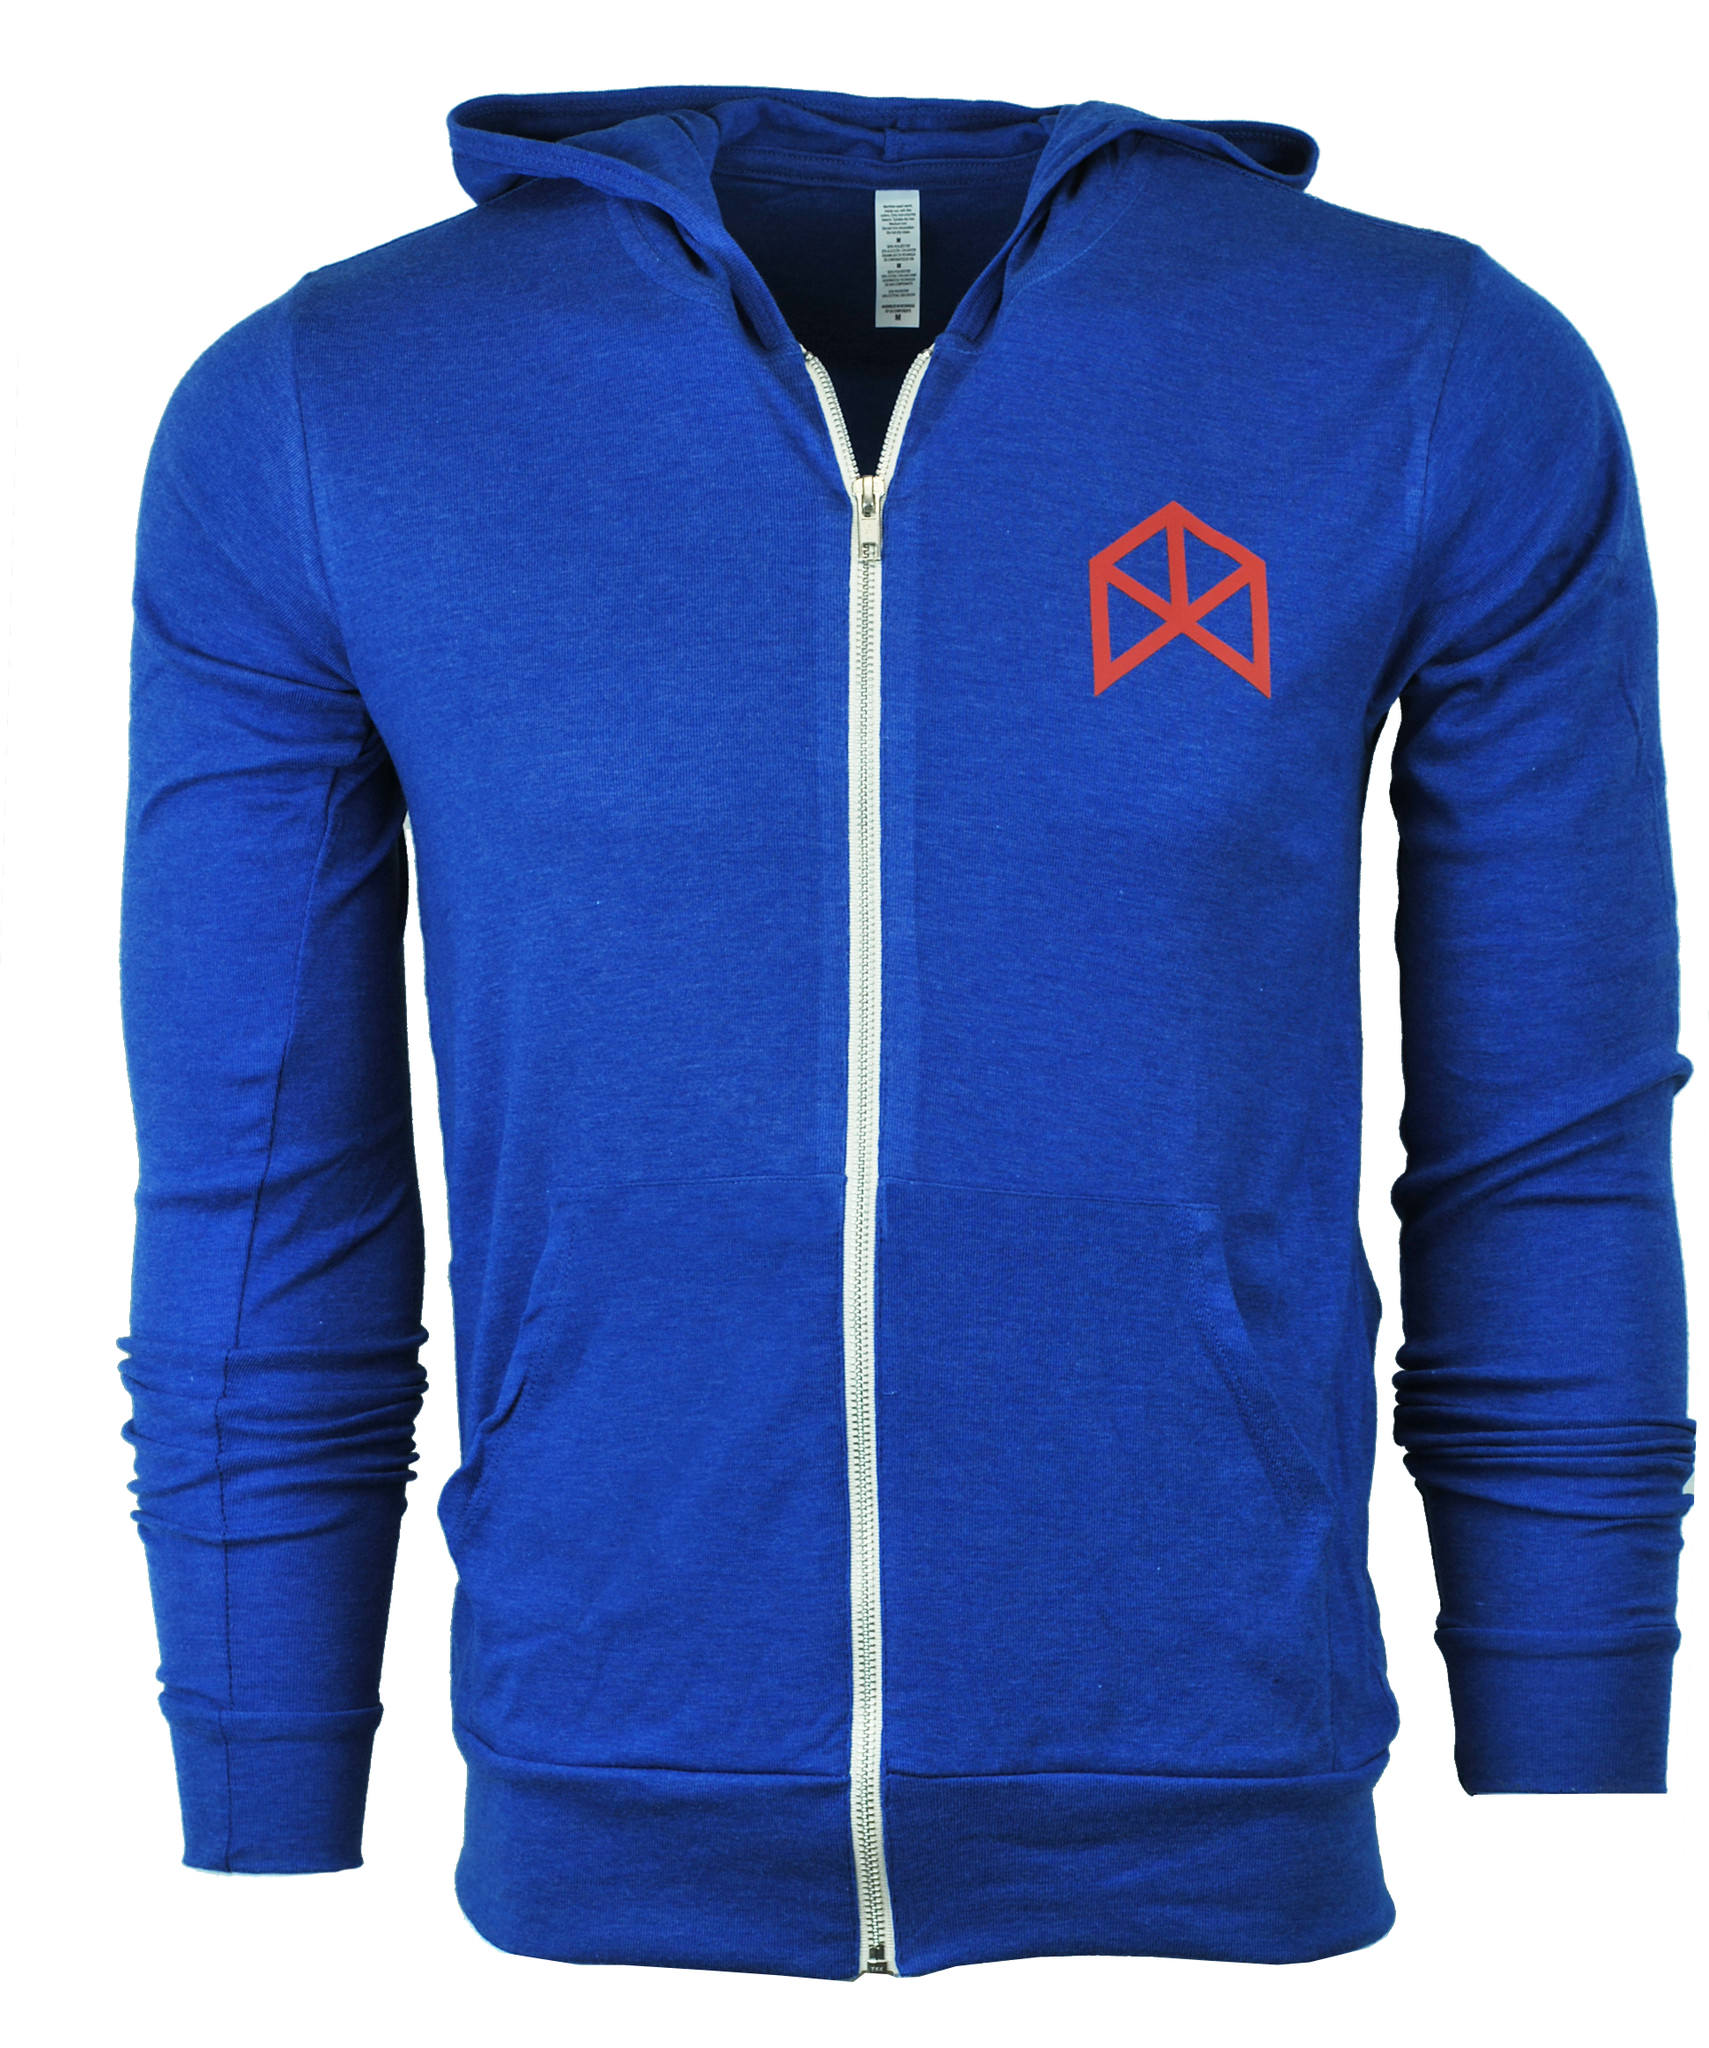 Royal Blue Zip Up Hoodie - Baggage Clothing